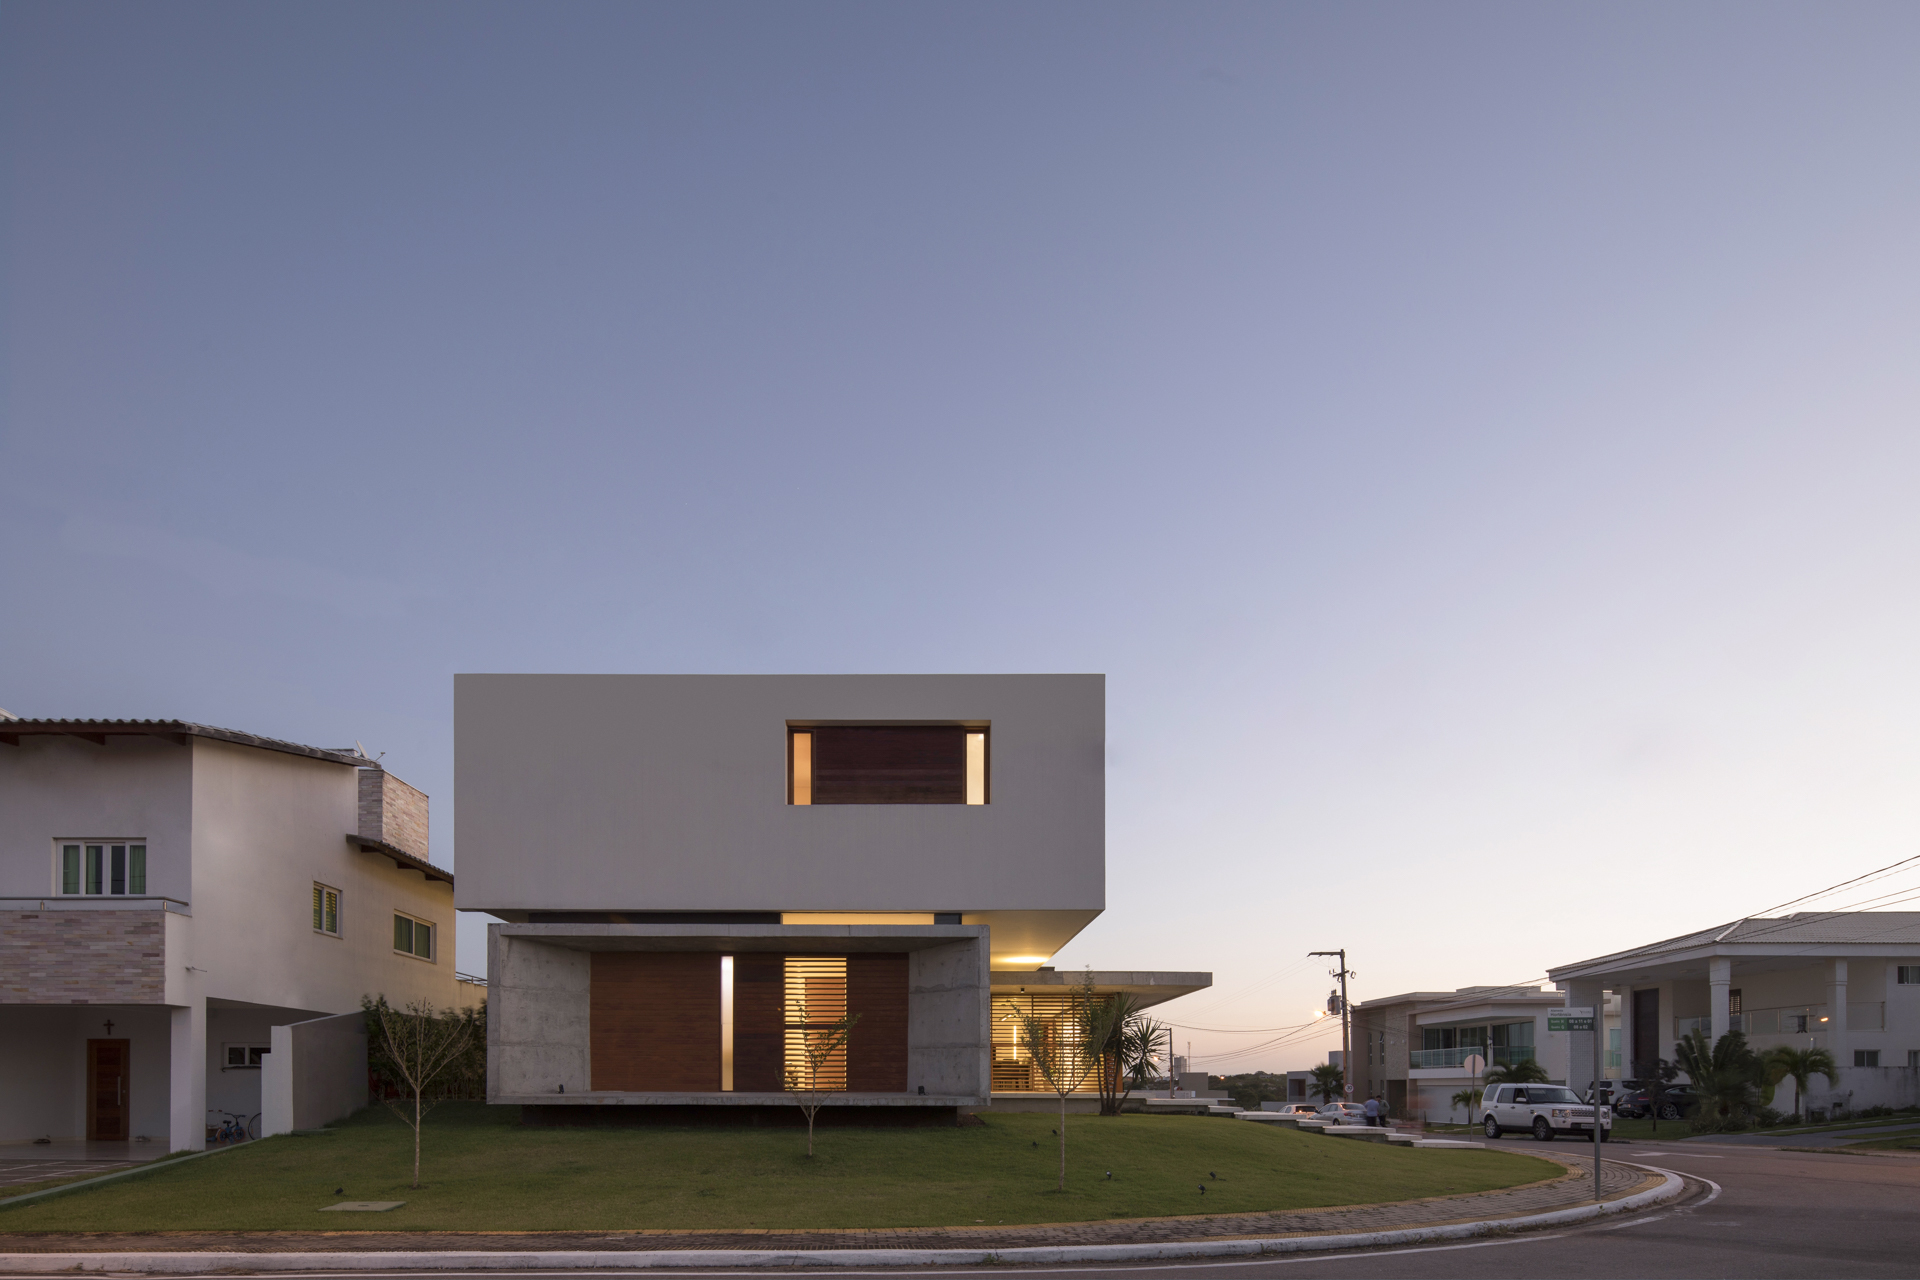 11_CASA_IF_-_Martins_Lucena_Arquitetos-15.jpg